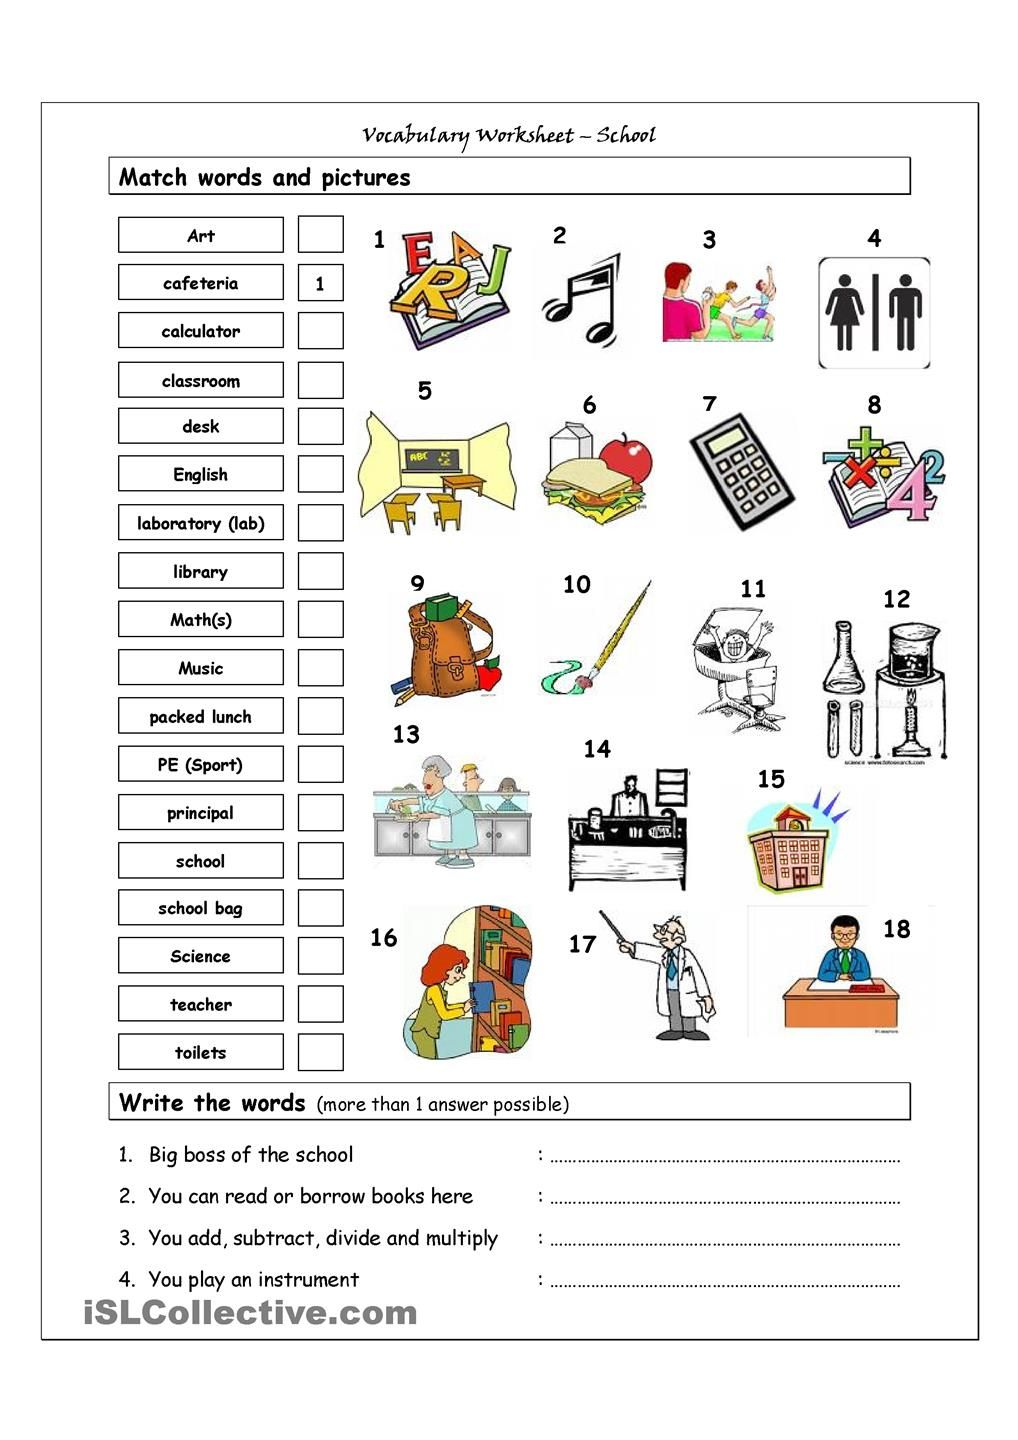 10+ Vocabulary worksheets with answers Images